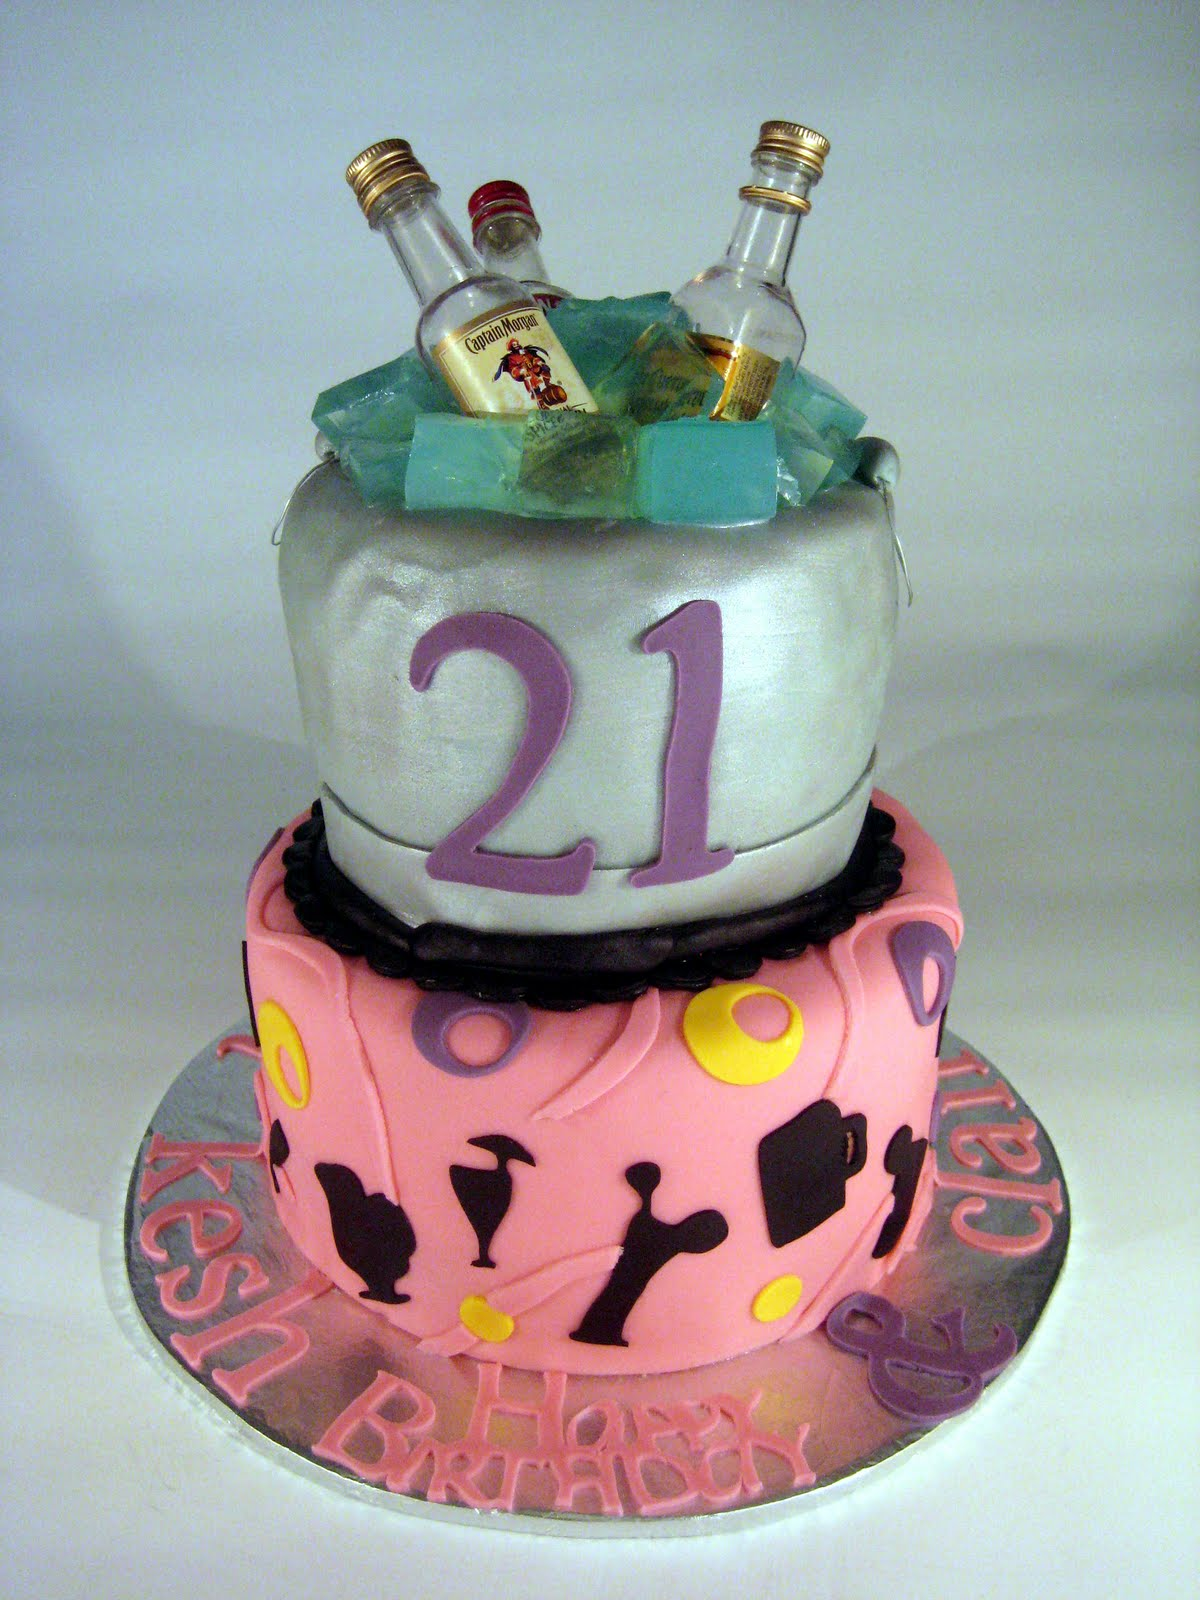 Birthday Cake Decoration Images : 21st Birthday Cakes   Decoration Ideas Little Birthday Cakes